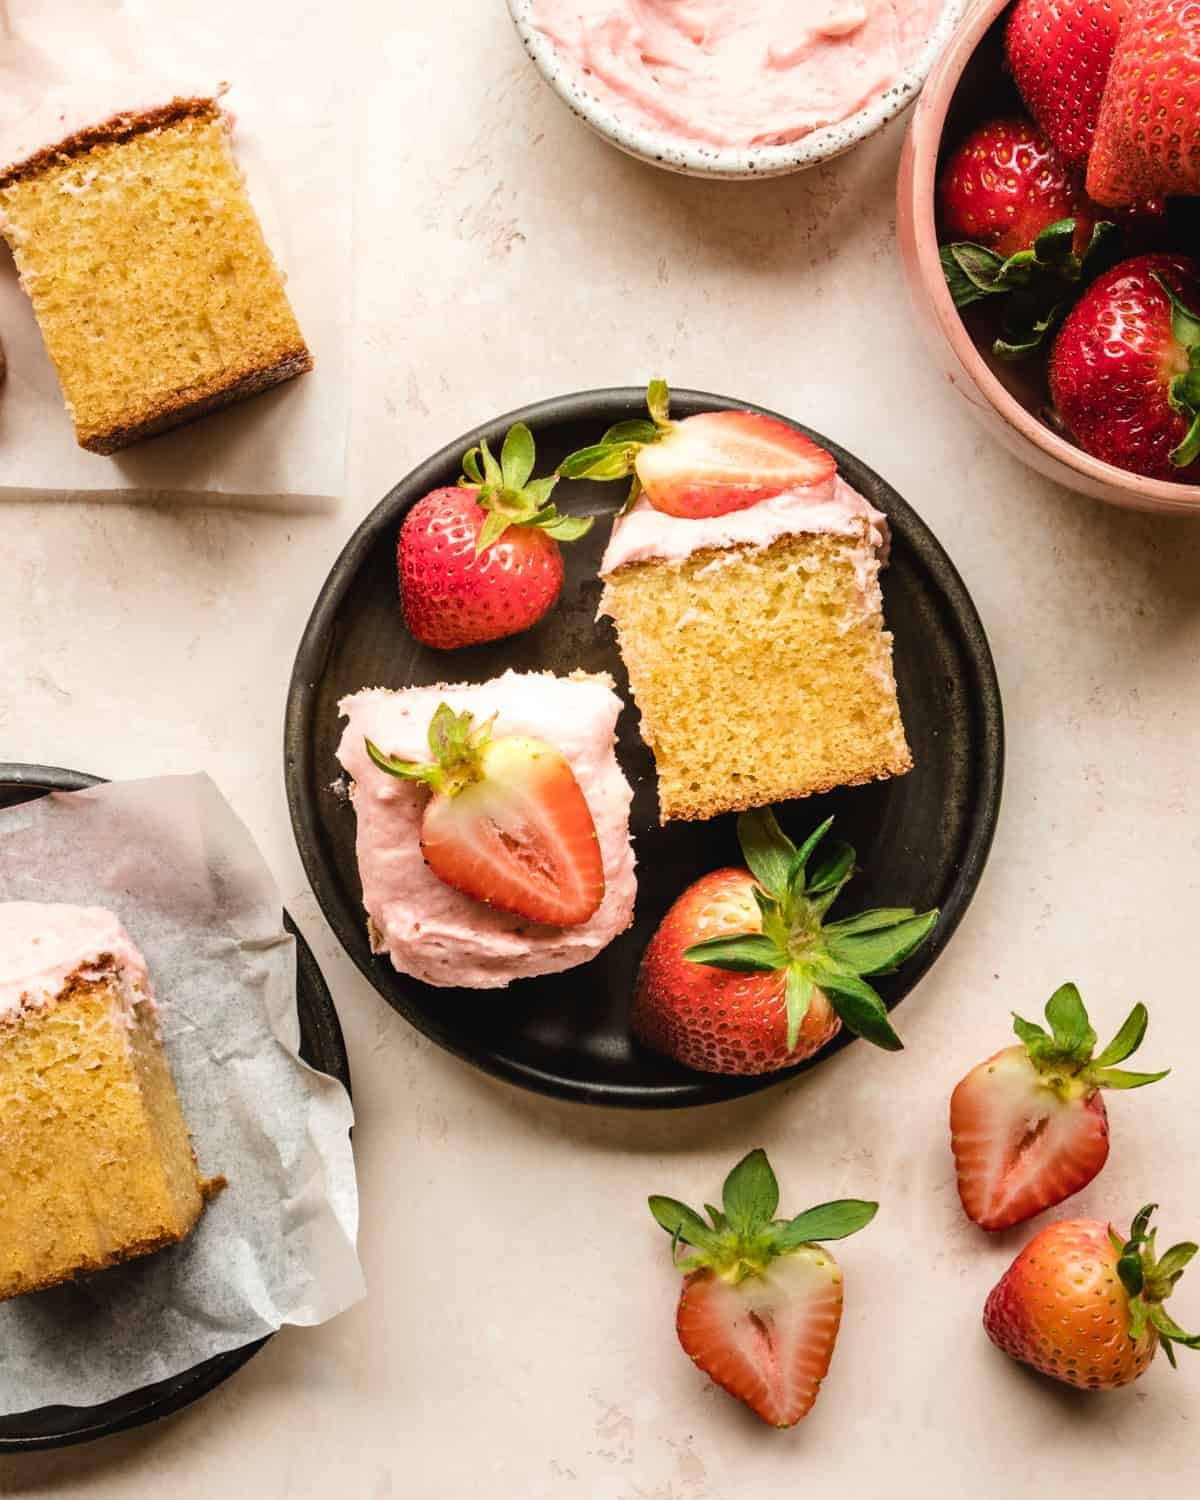 pieces of vanilla cake with strawberry frosting on a round black plate with strawberries